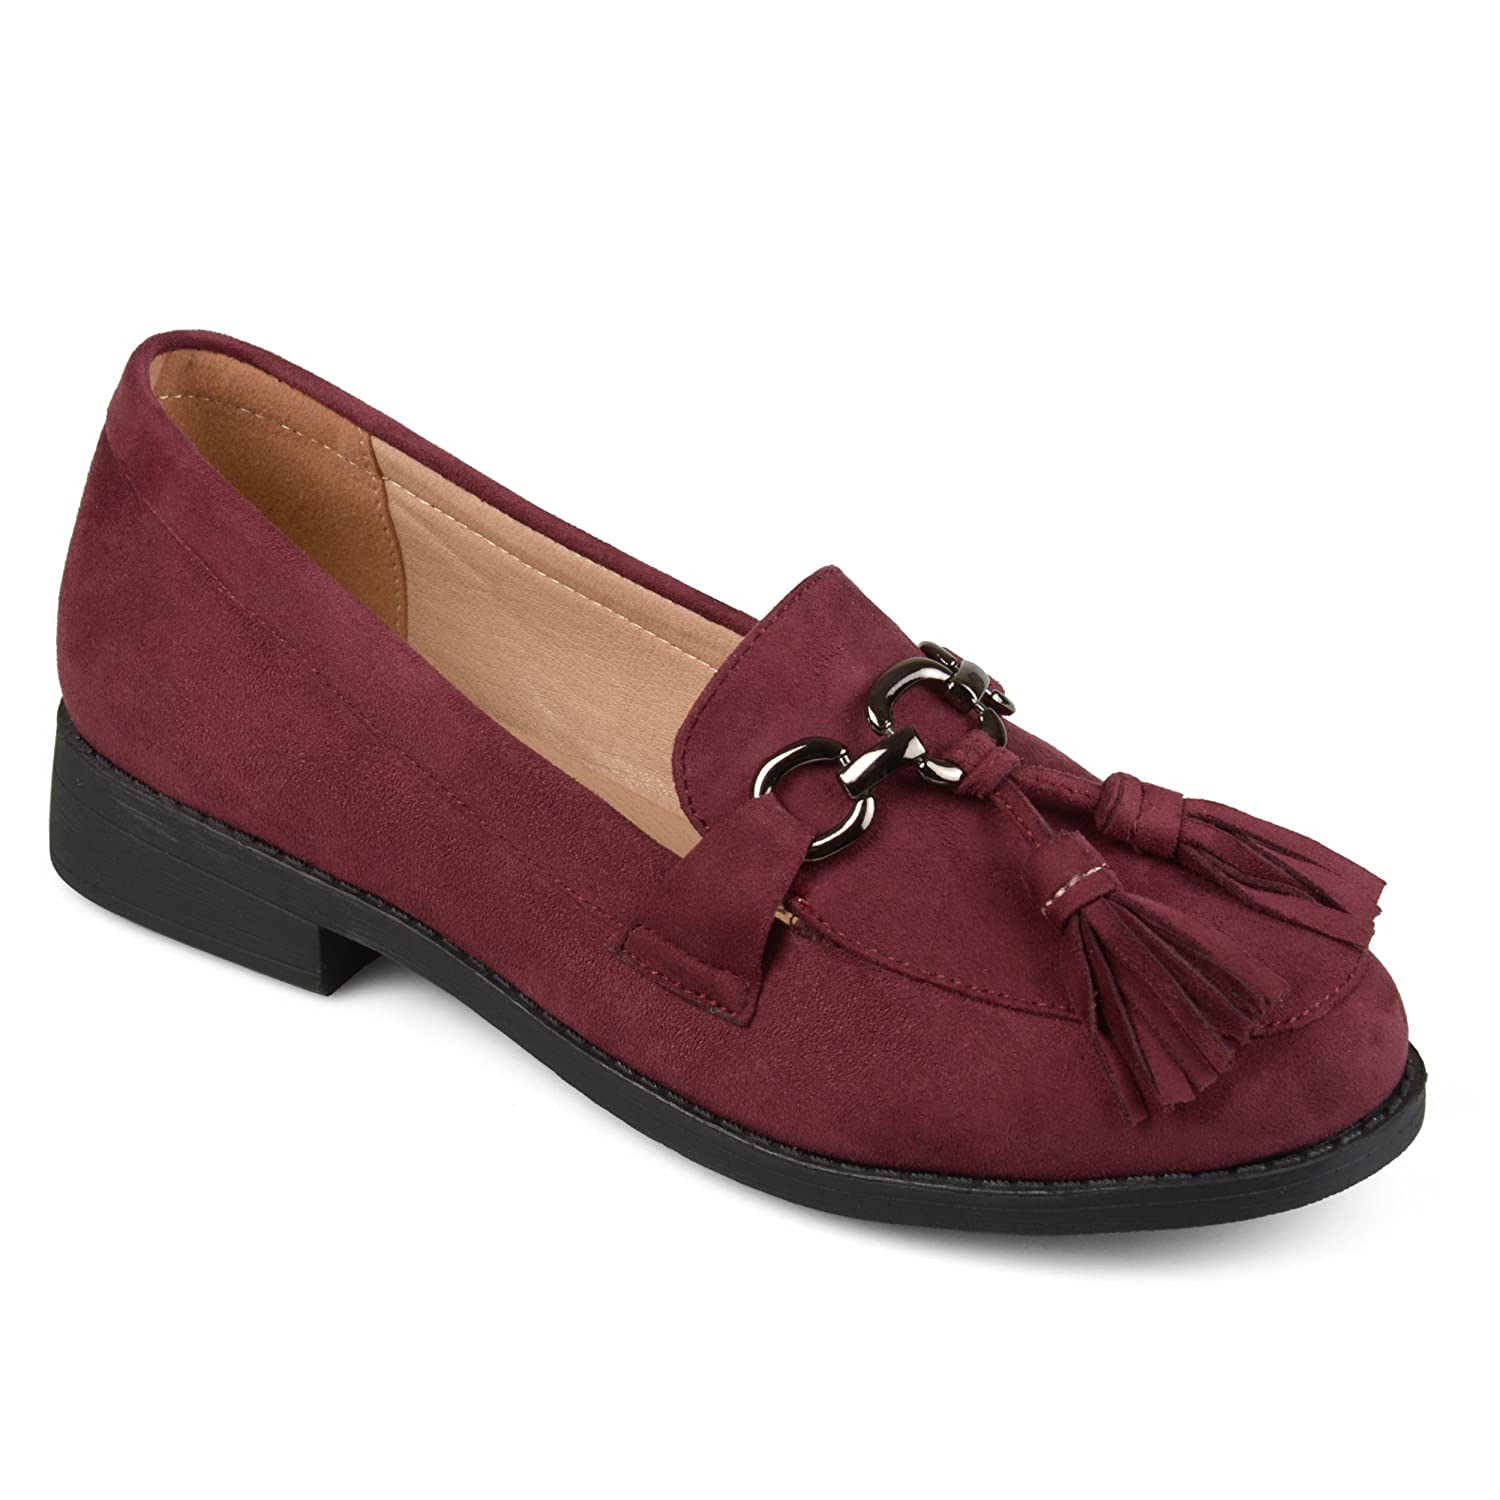 b0e1f4f184d4b Journee Collection Womens Faux Suede Tassel Loafers